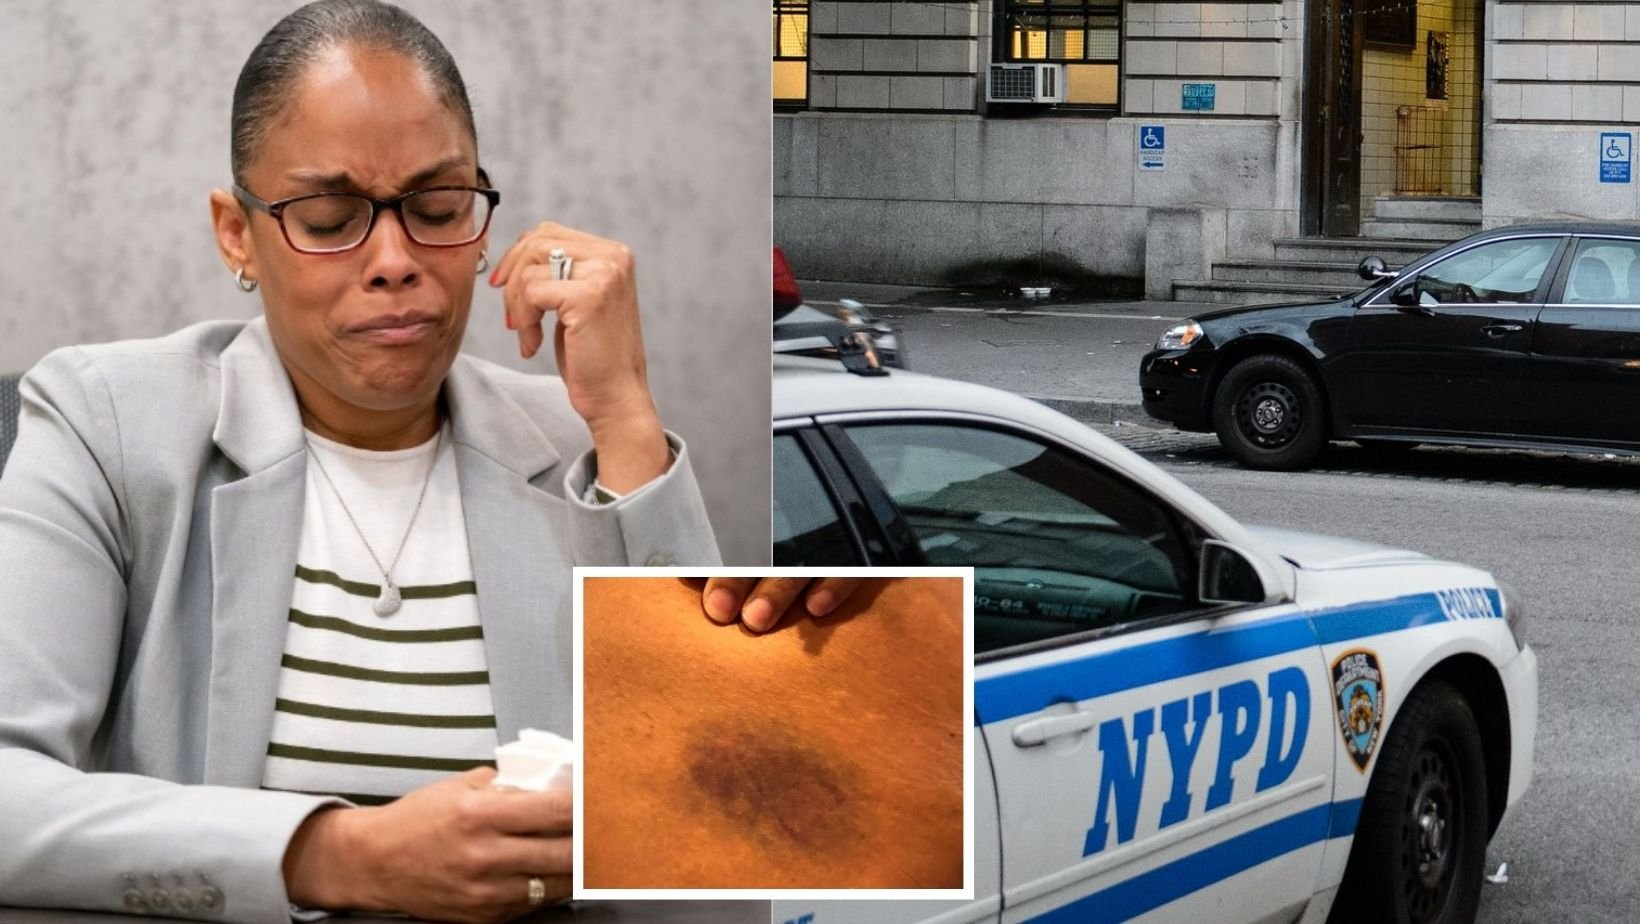 small joys thumbnail 2 6.jpg?resize=1200,630 - Ex-NYPD Cop Claims She Was R*ped By Co-Officers Until Her Genitals Were Deformed While Her Superiors Ignored Her Cry For Help